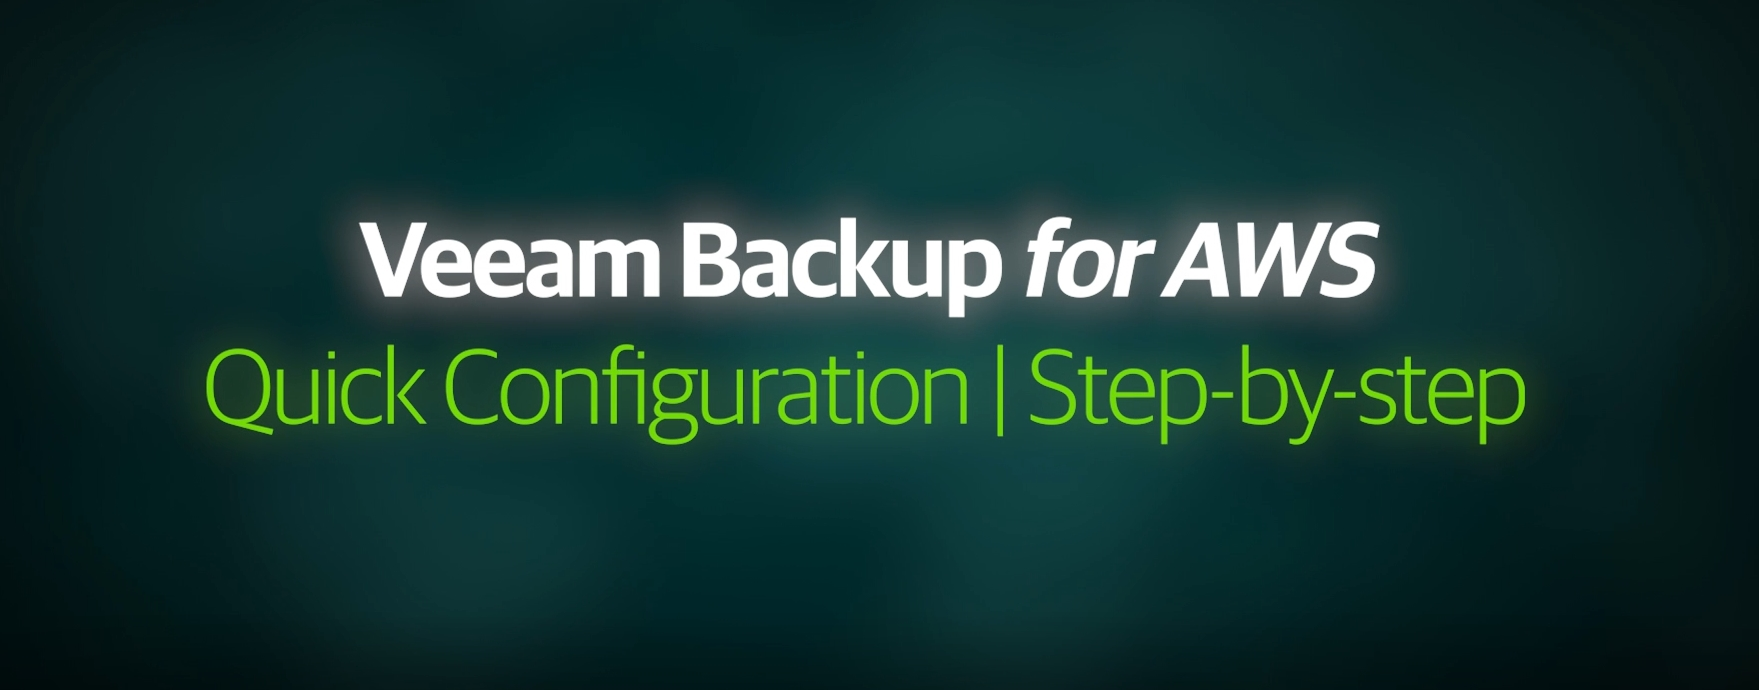 Veeam Backup for AWS — Step-by-step configuration